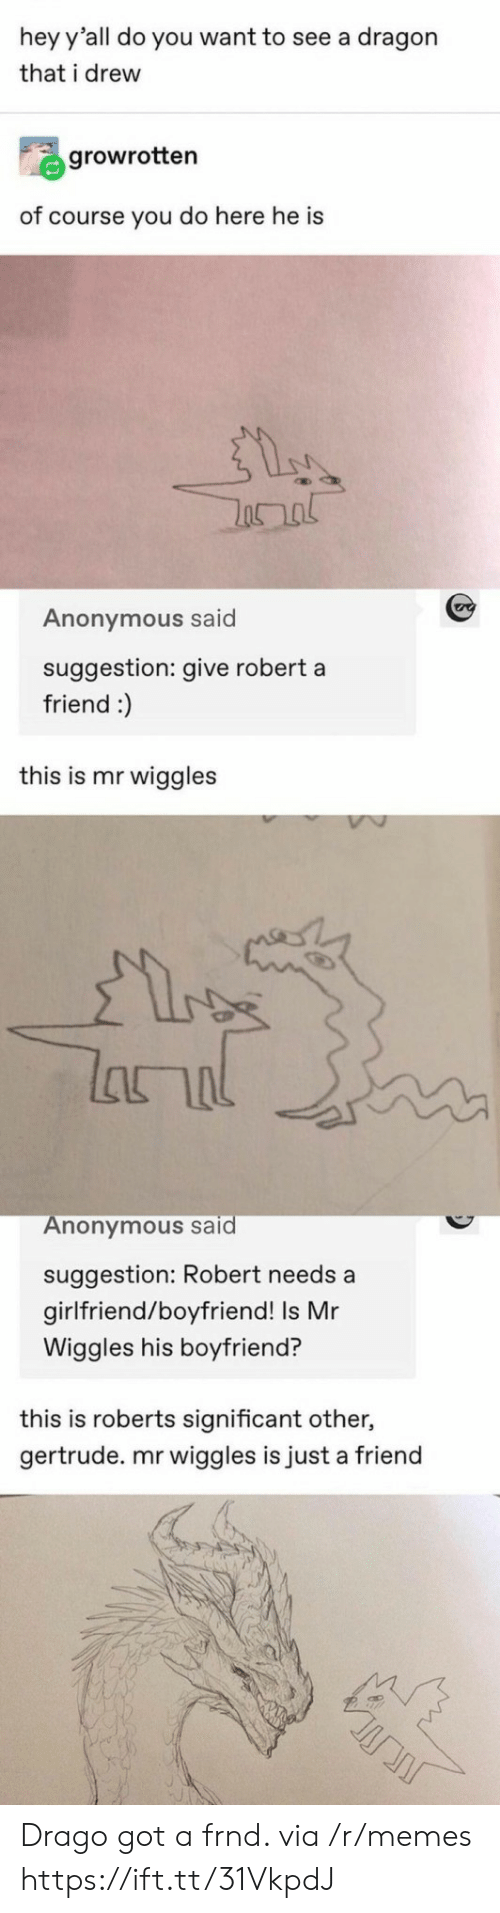 roberts: hey y'all do you want to see a dragon  that i drew  growrotten  of course you do here he is  Anonymous said  suggestion: give robert a  friend :)  this is mr wiggles  lanal  Anonymous said  suggestion: Robert needs a  girlfriend/boyfriend! Is Mr  Wiggles his boyfriend?  this is roberts significant other,  gertrude. mr wiggles is just a friend Drago got a frnd. via /r/memes https://ift.tt/31VkpdJ